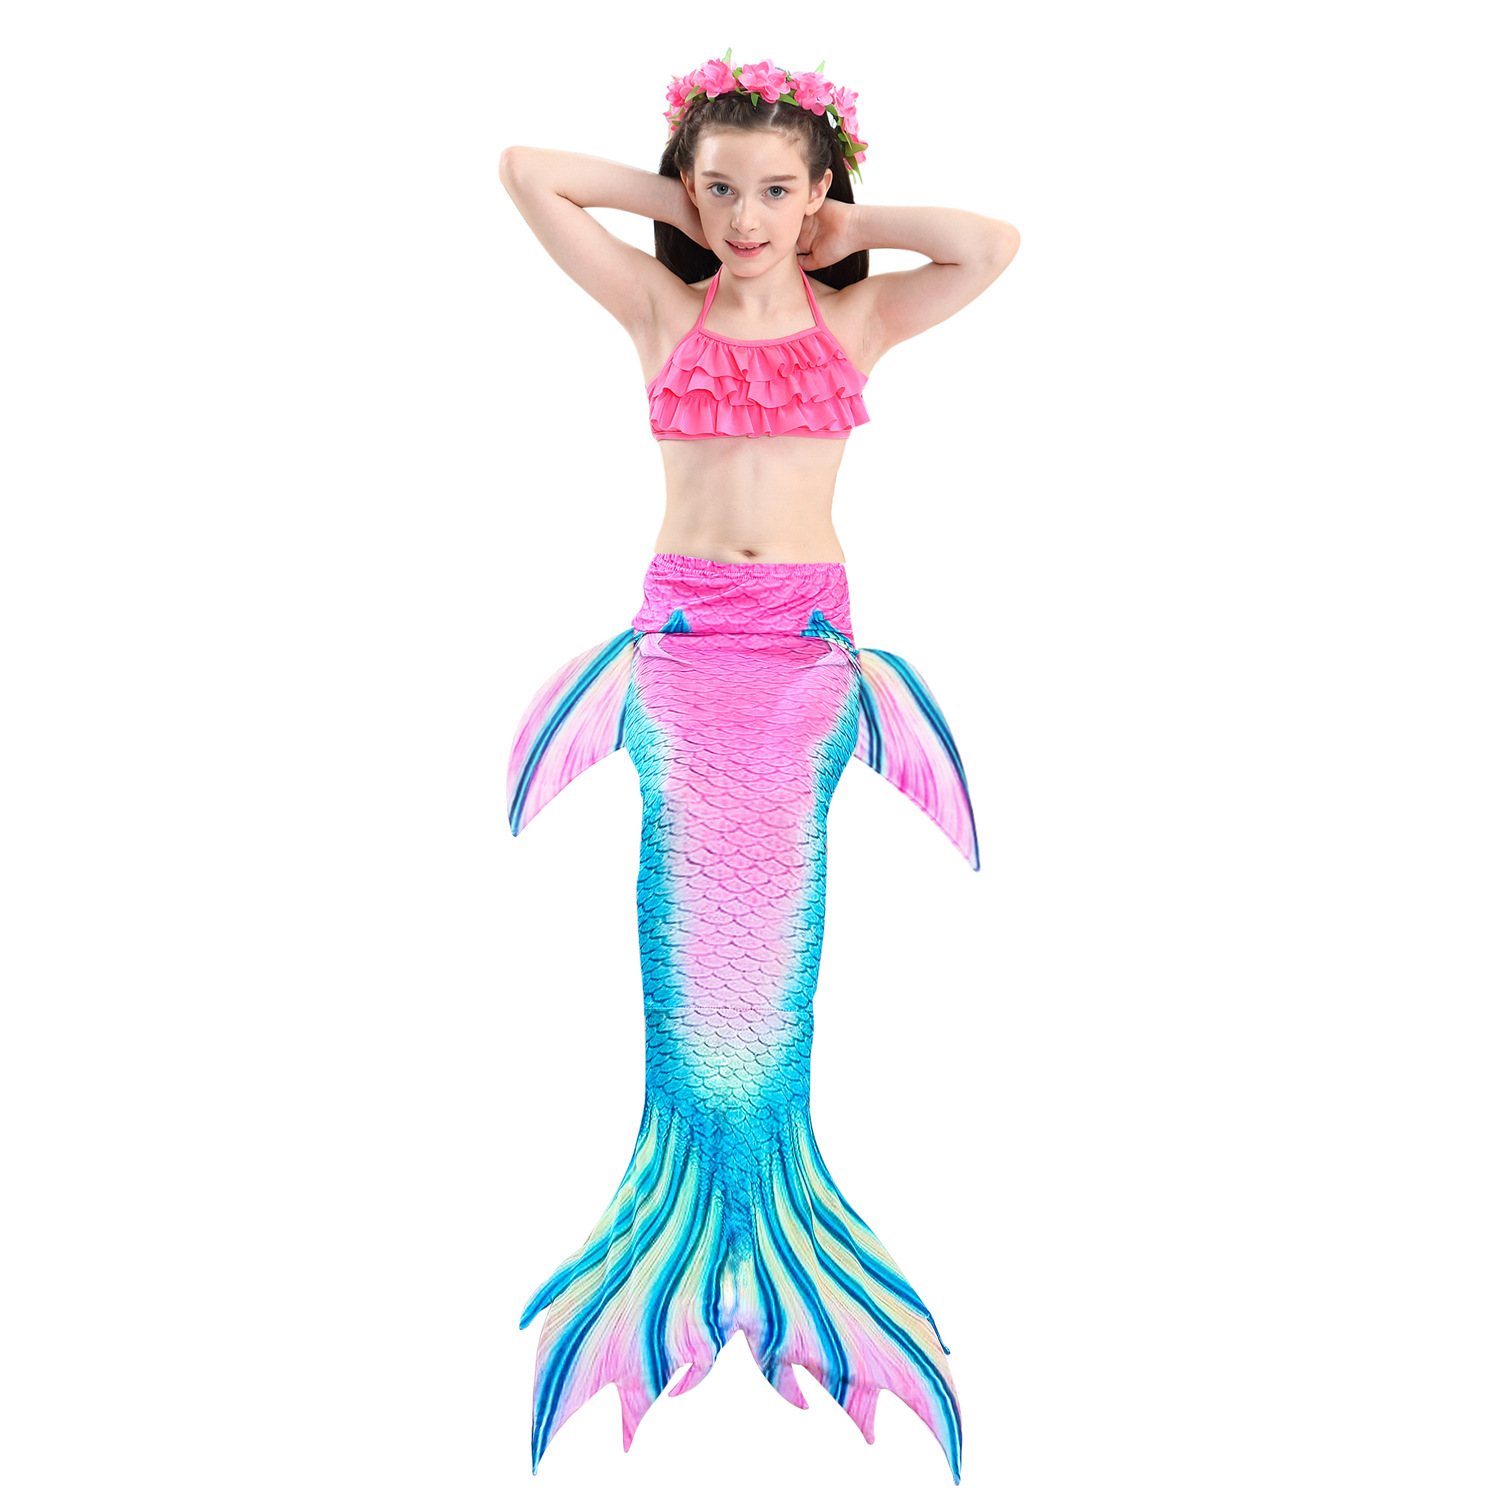 9258216547 898390851 - 4PCS/Set HOT Kids Girls Mermaid Tails with Fin Swimsuit Bikini Bathing Suit Dress for Girls With Flipper Monofin For Swim